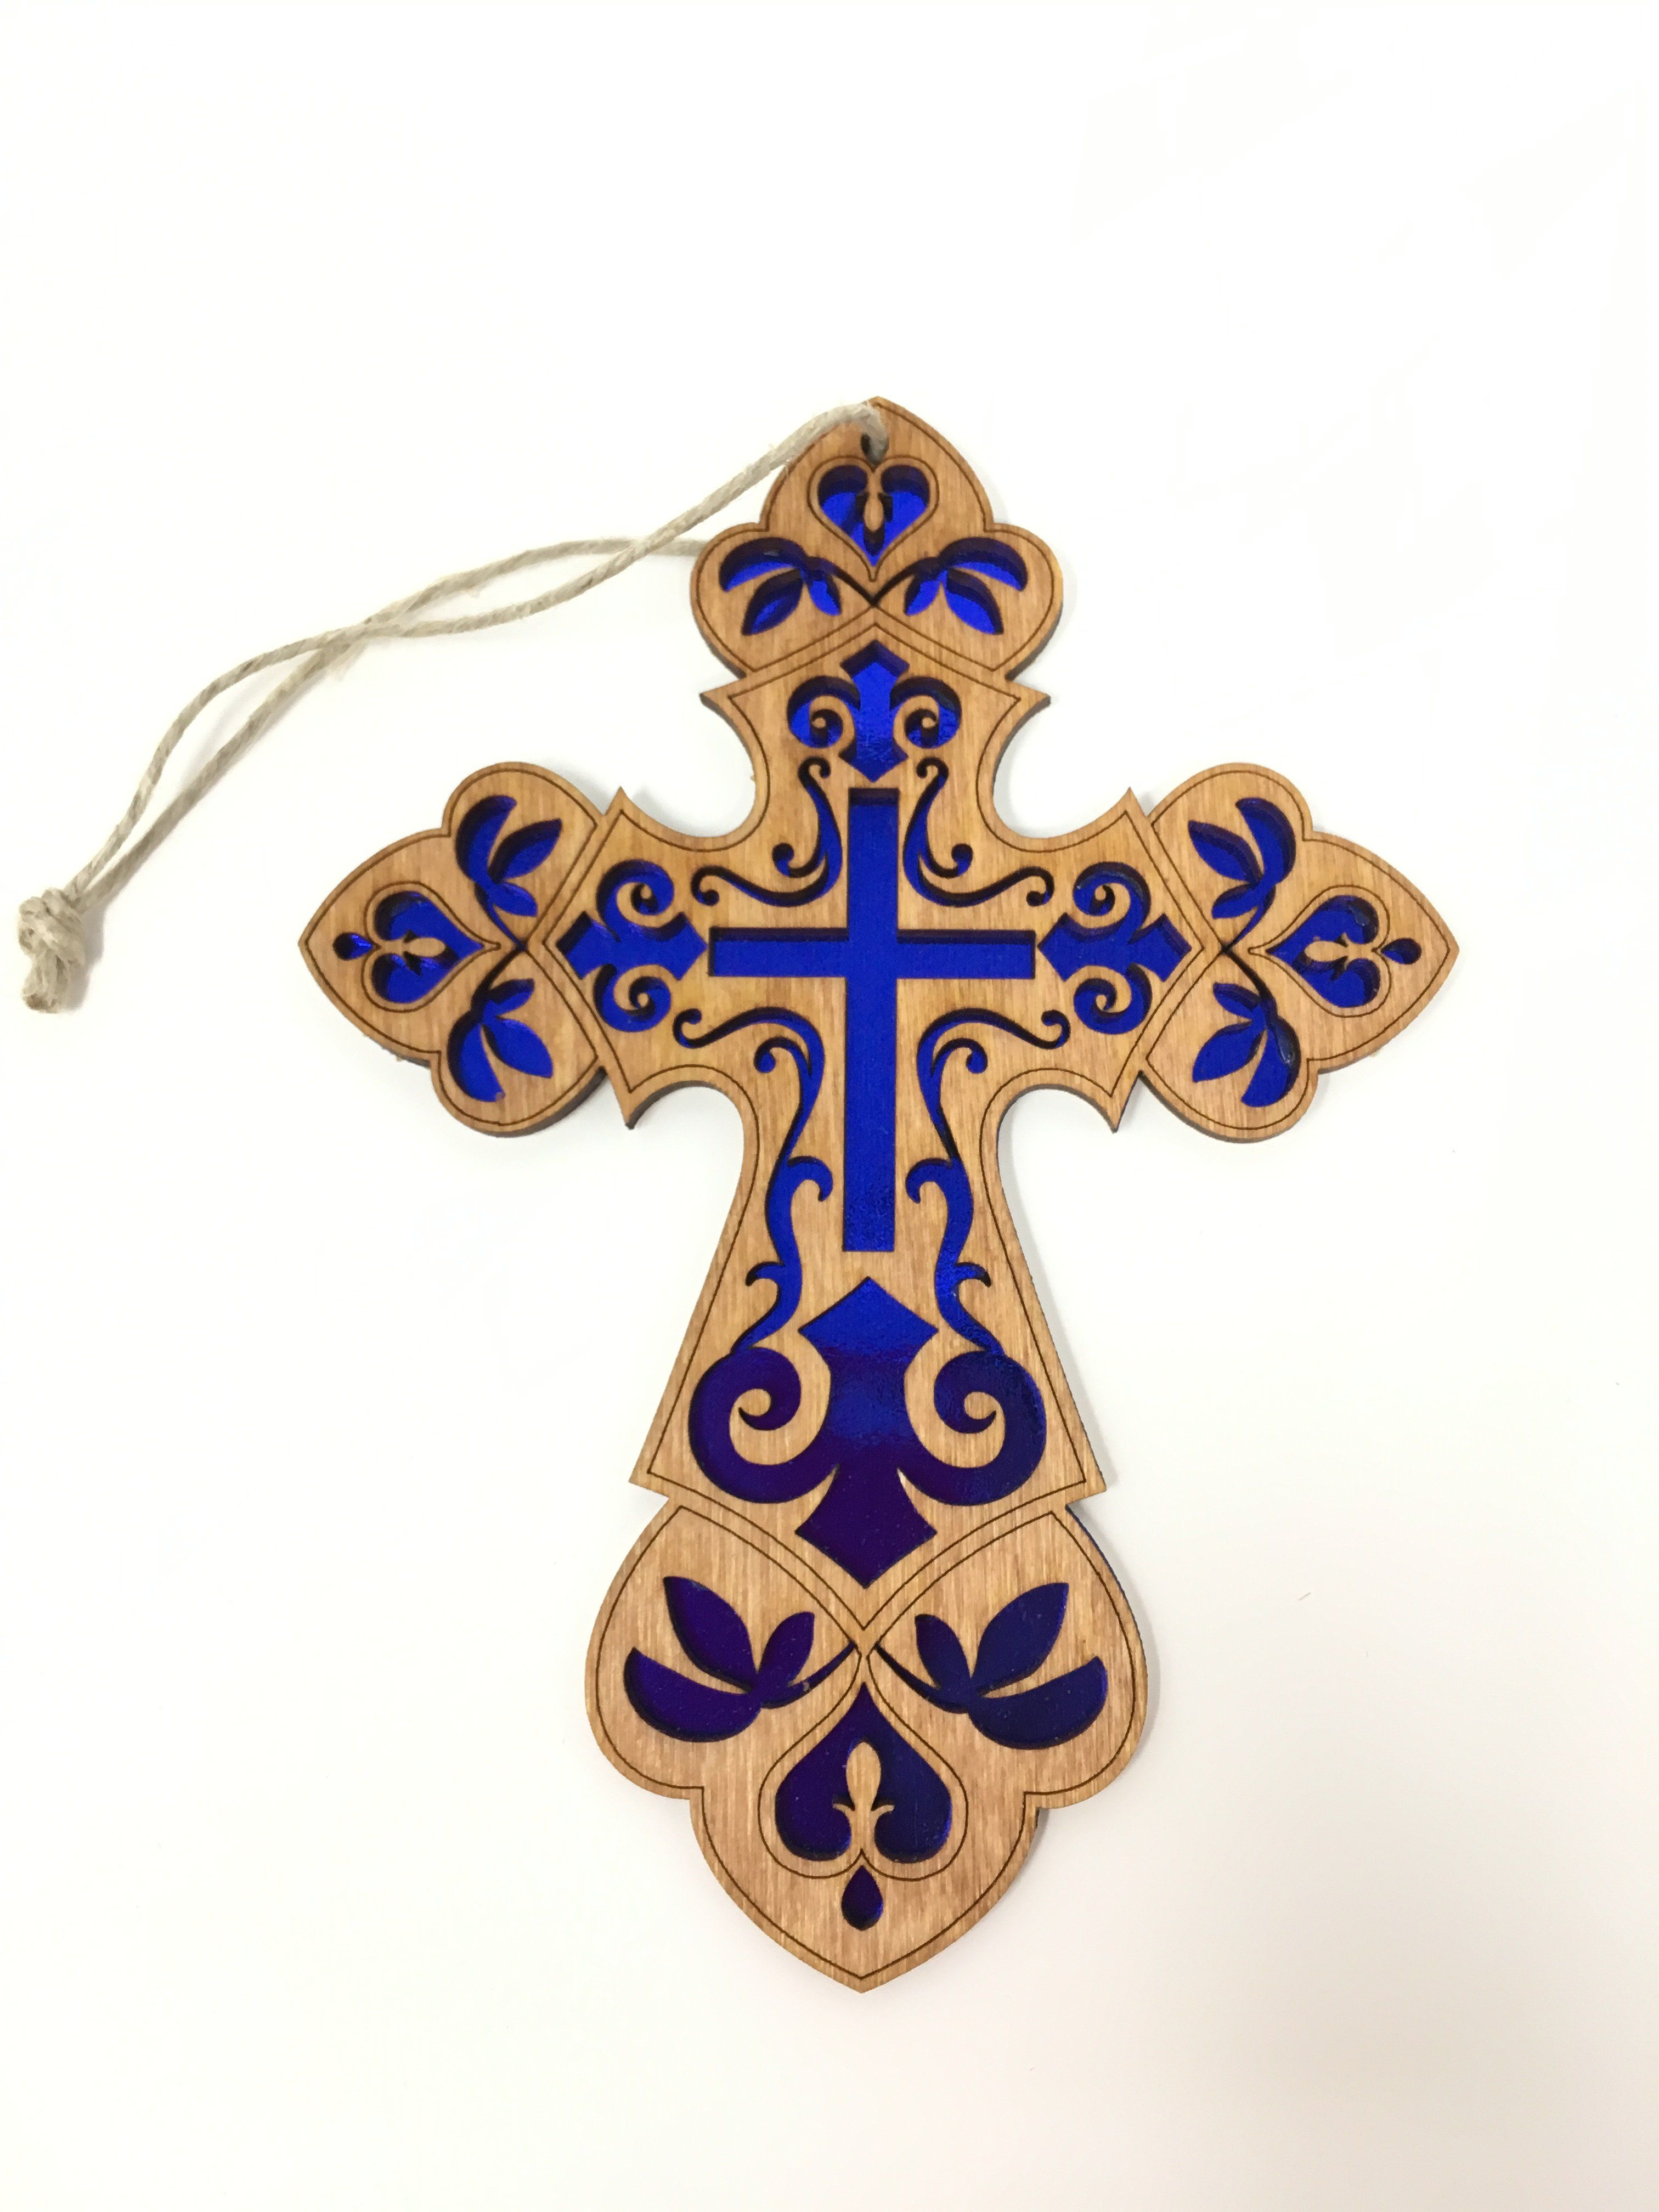 C. Ornate Cross with Paper Scroll saw patterns, Scroll